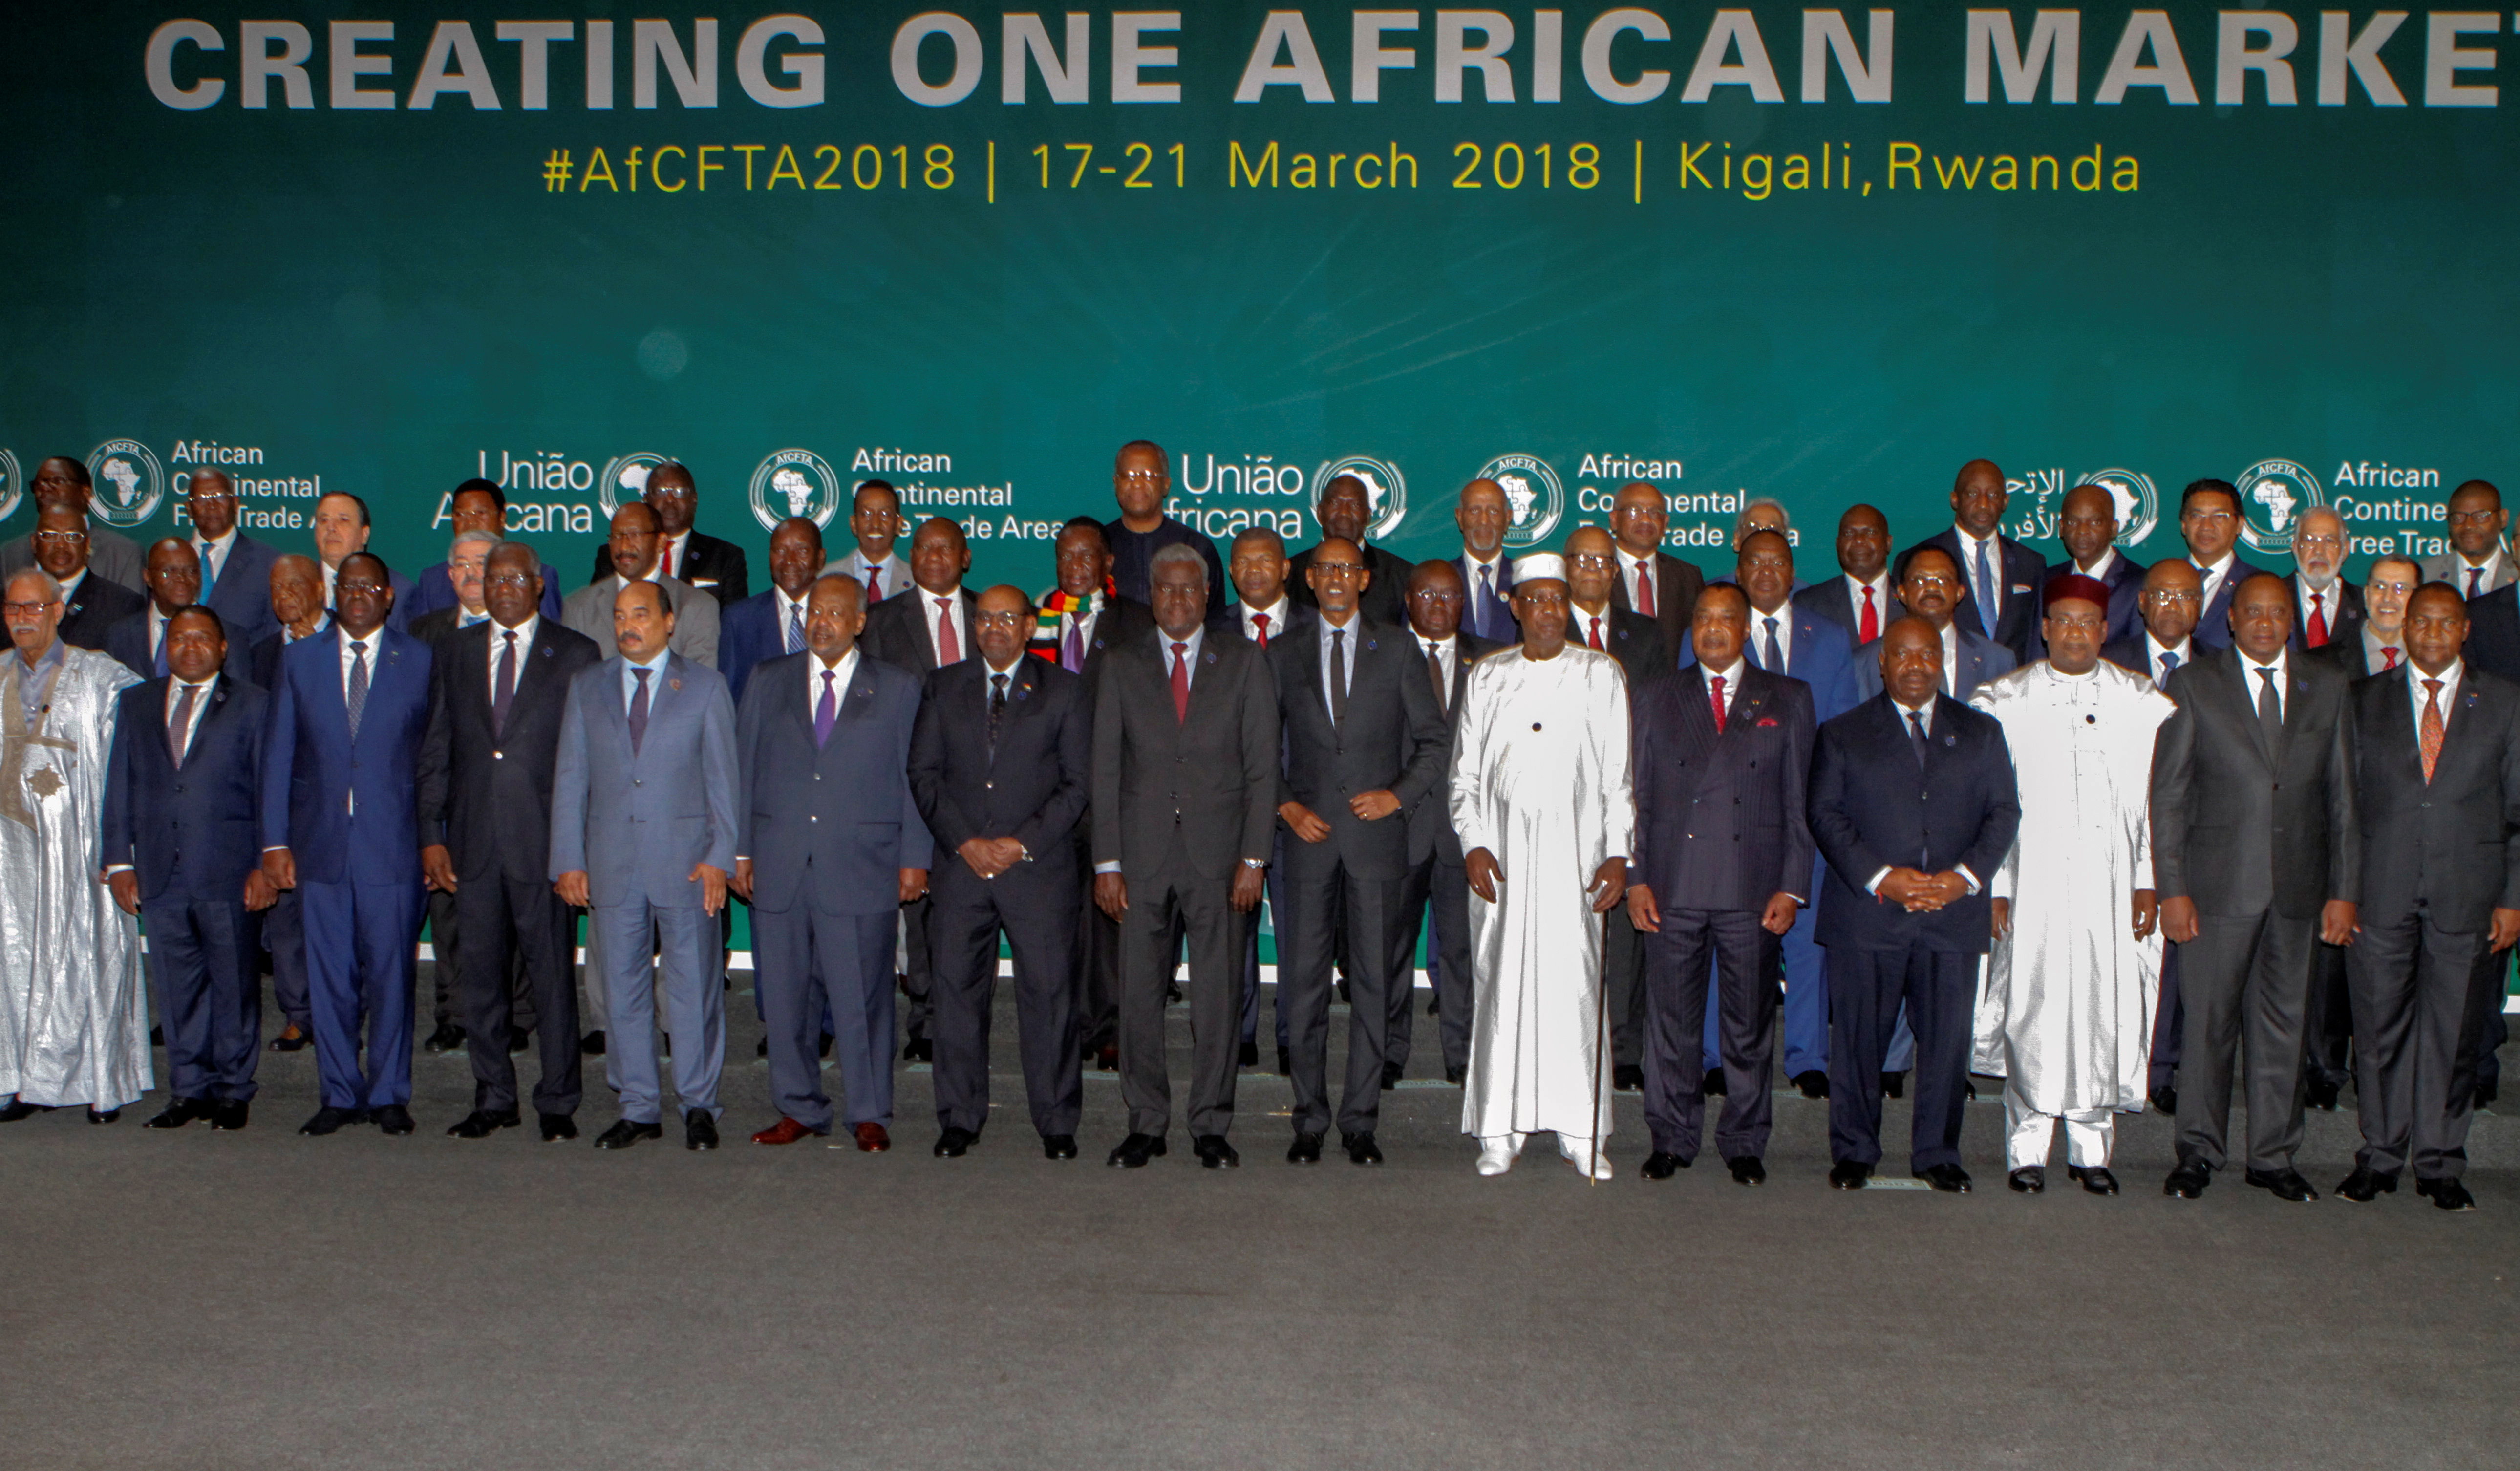 African leaders pose for a group photograph as they meet to sign a free trade deal, in Kigali